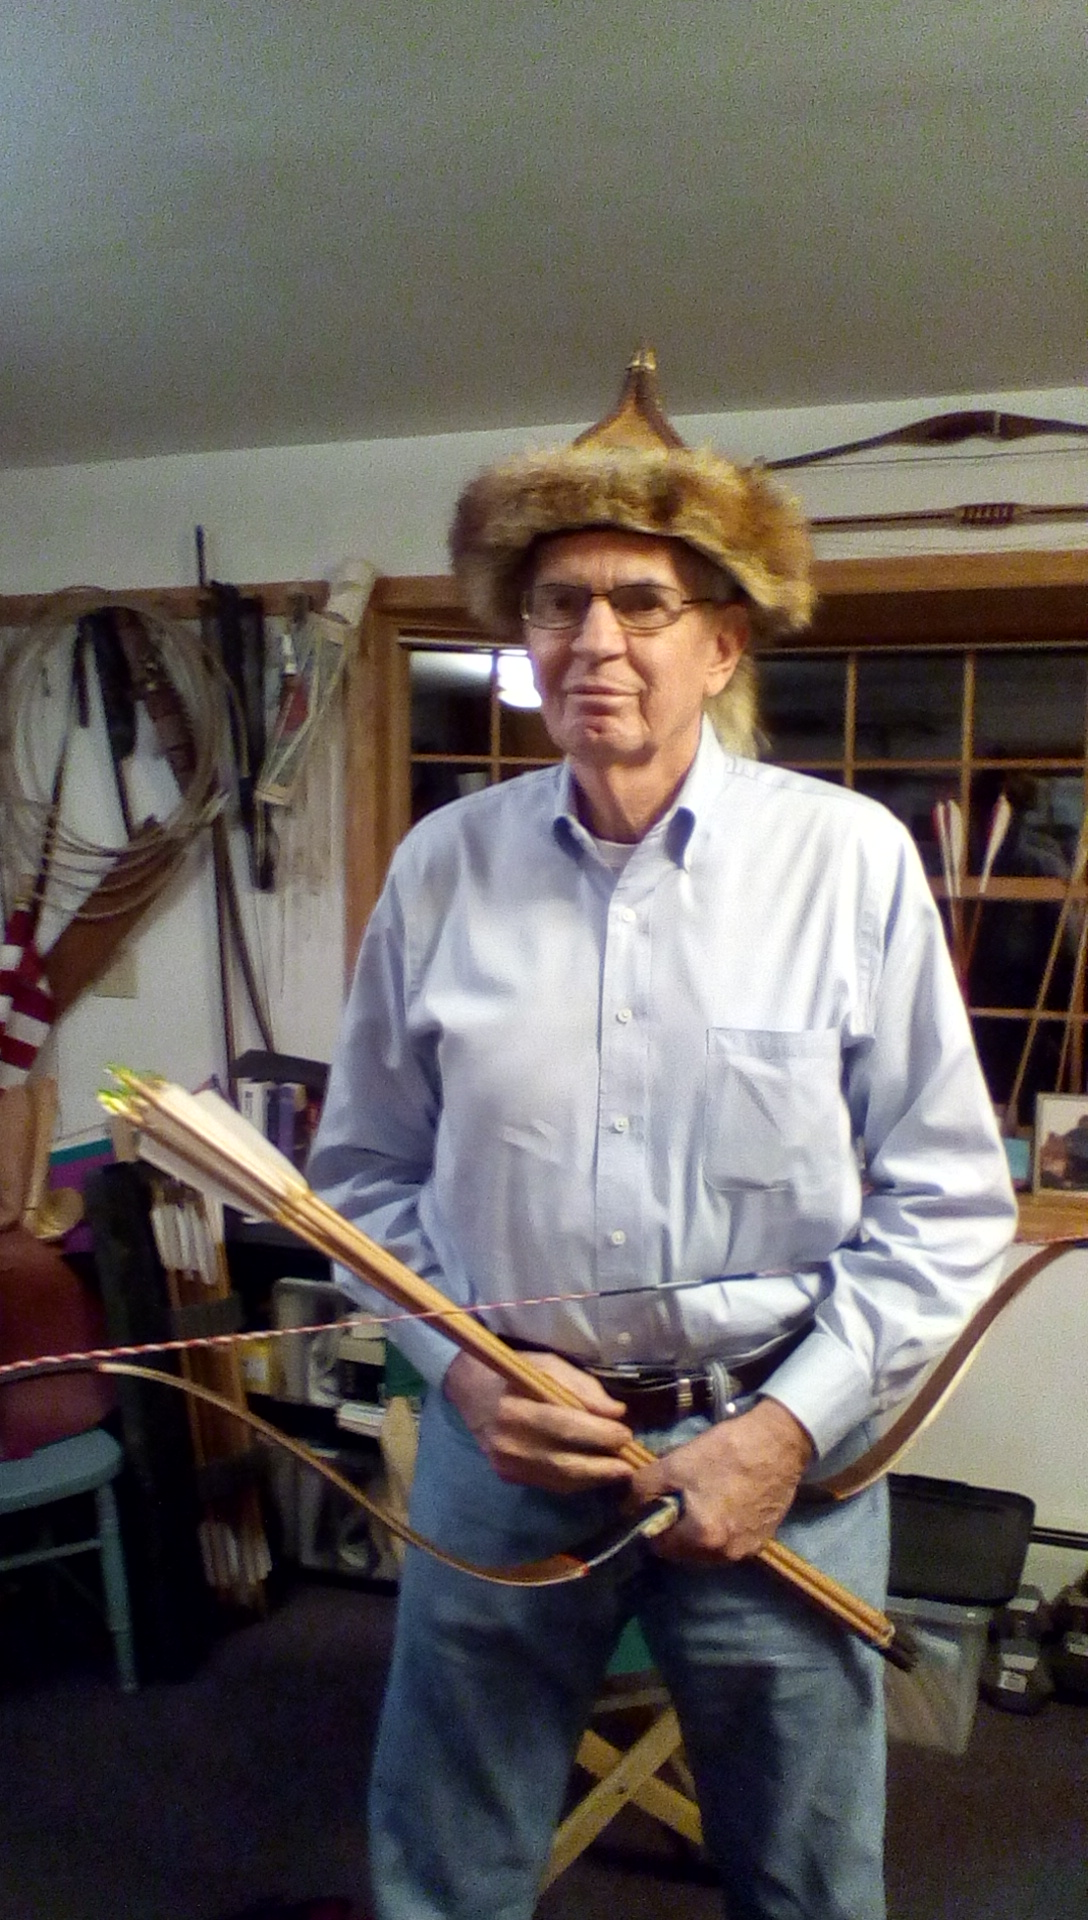 Dave with tradition hat & archery equipment in 2015